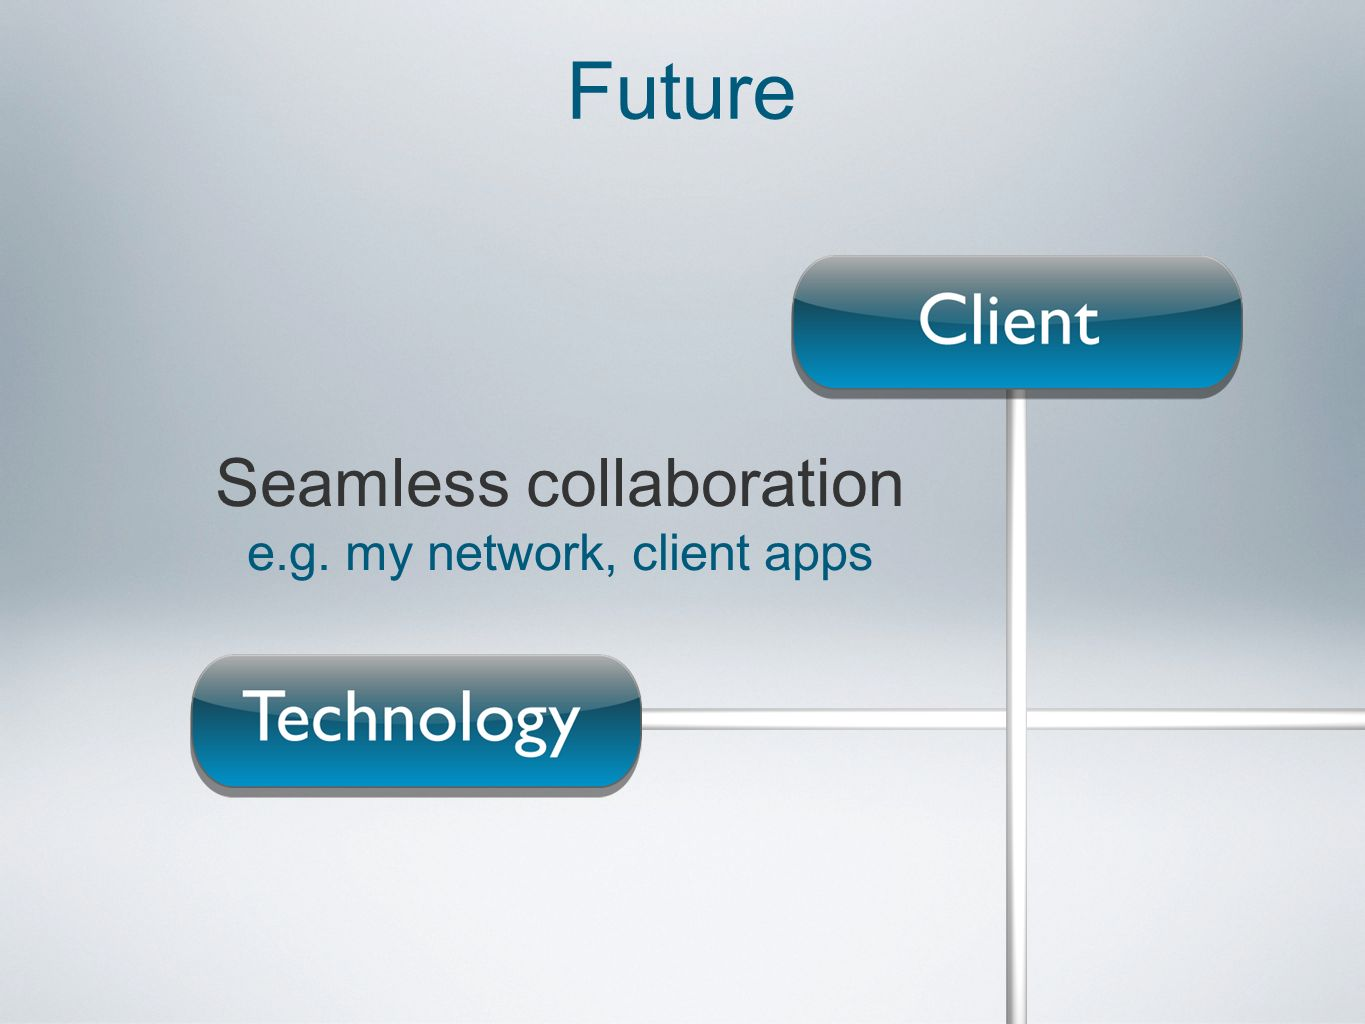 Seamless collaboration e.g. my network, client apps